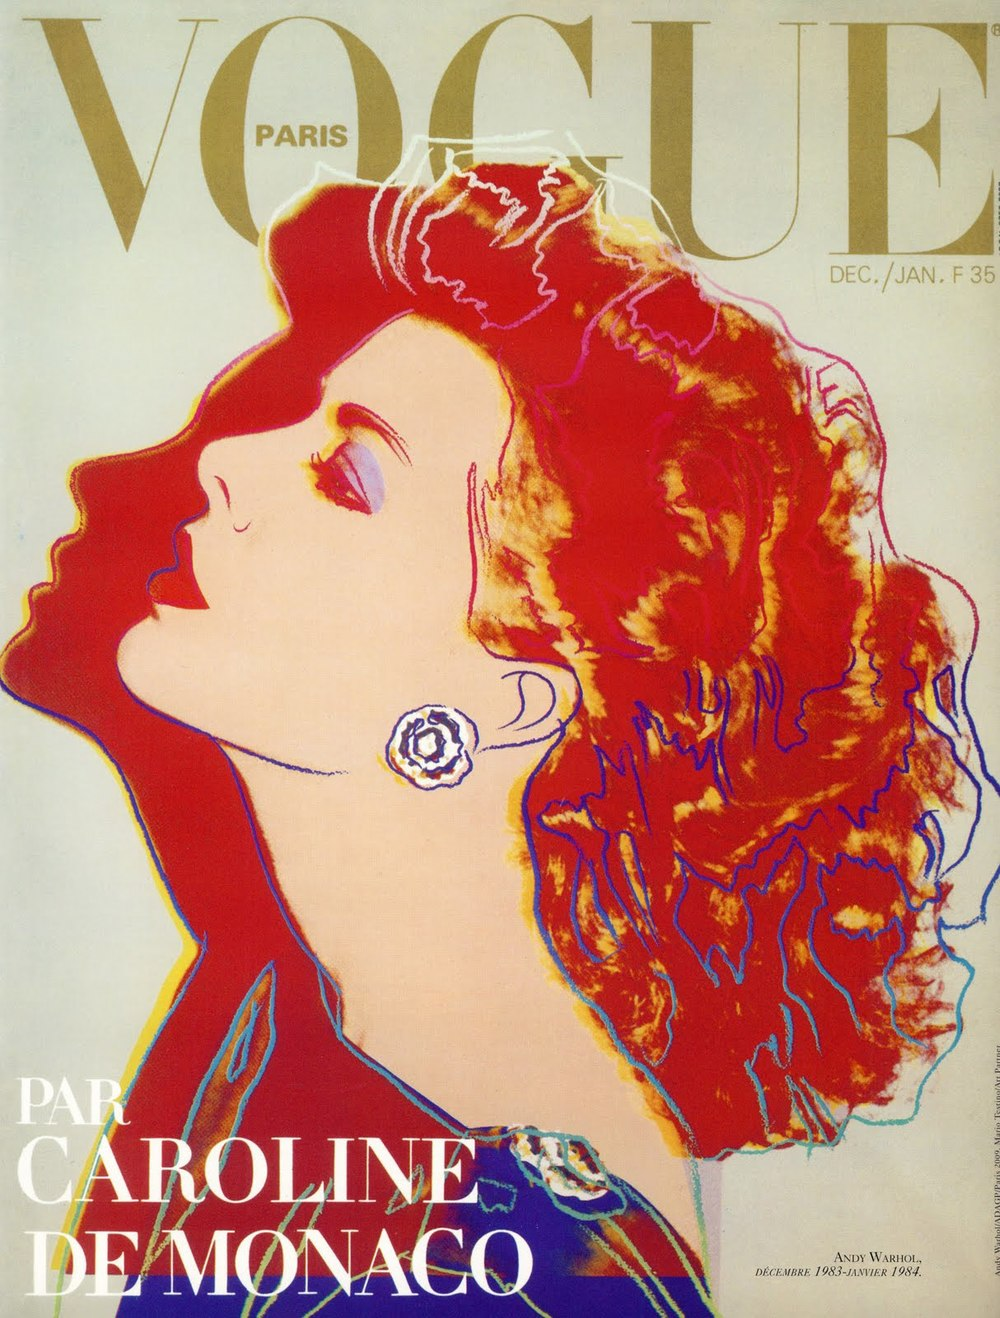 0000 vogue-paris-andy-warhol.jpg